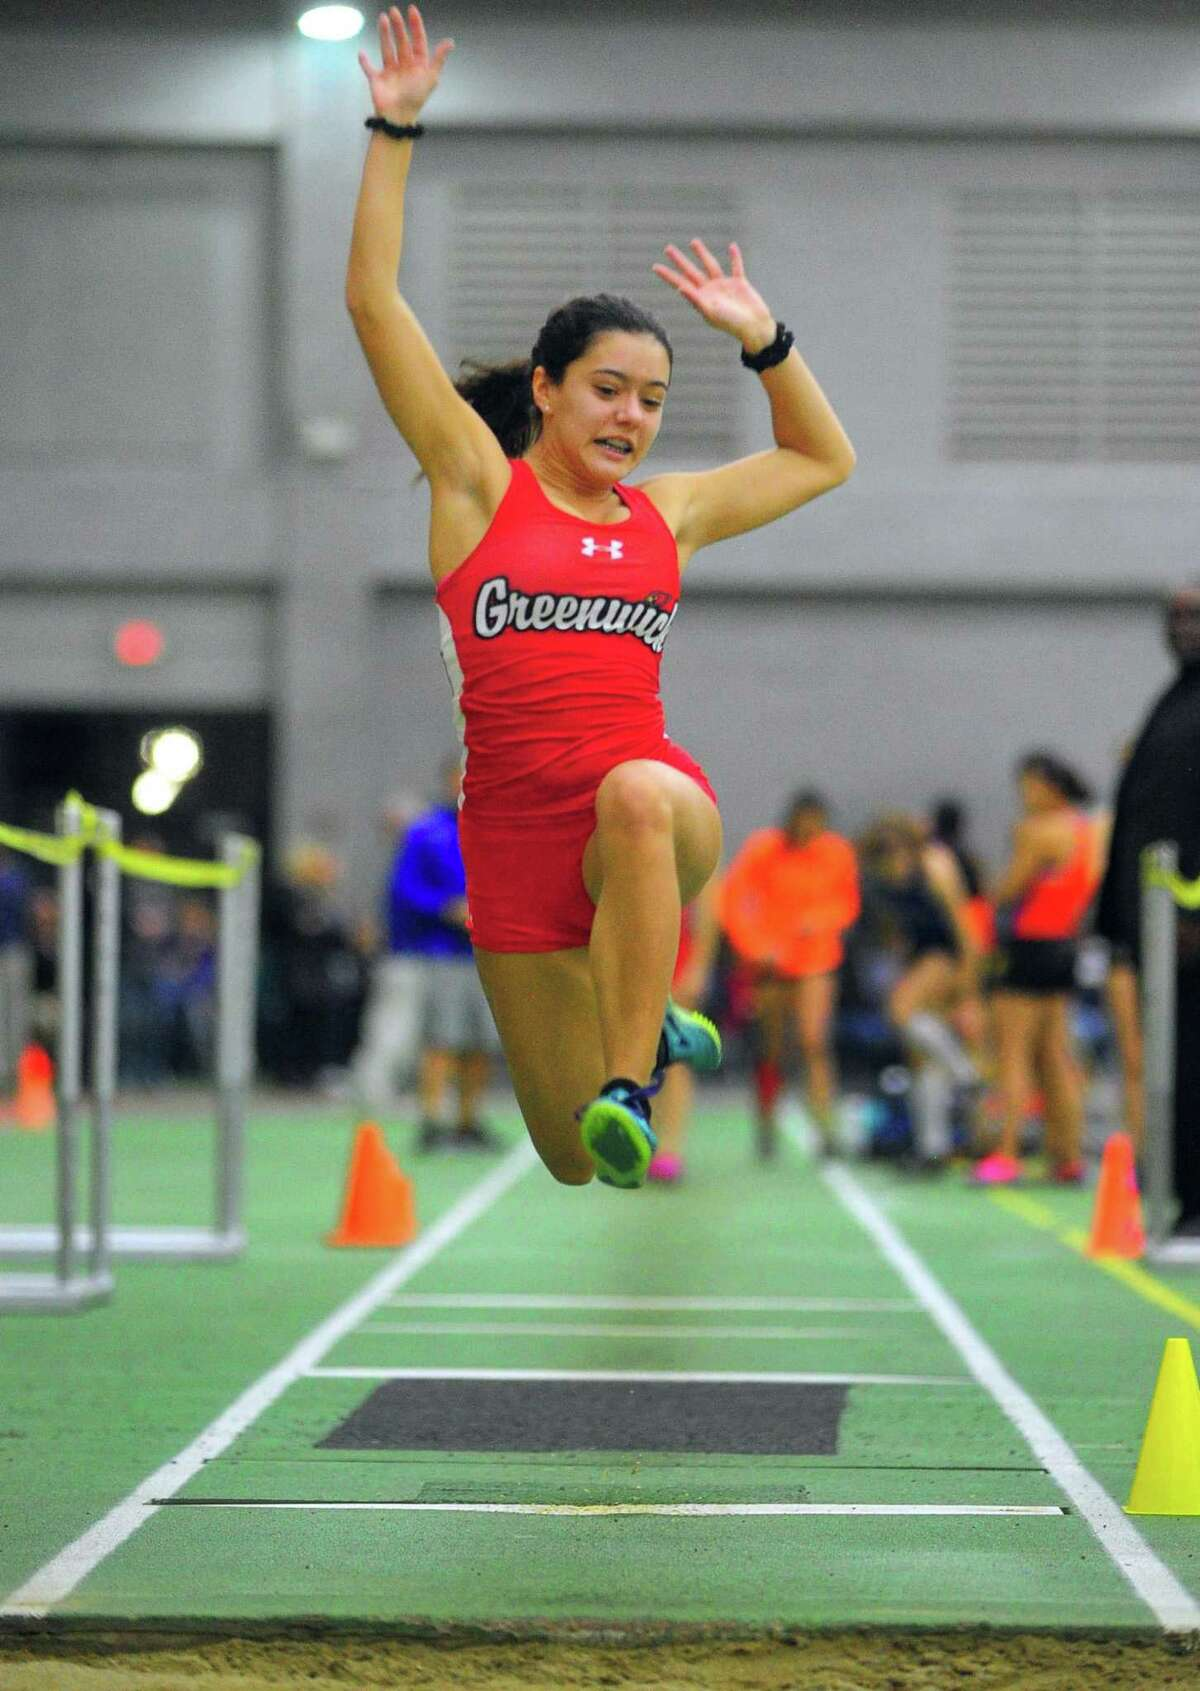 Greenwich's Caroline Carvalho competes in the long jump during the FCIAC Indoor Track and Field Championships on Thursday in New Haven. For complete coverage of the meet visit greenwichtime.com/sports.